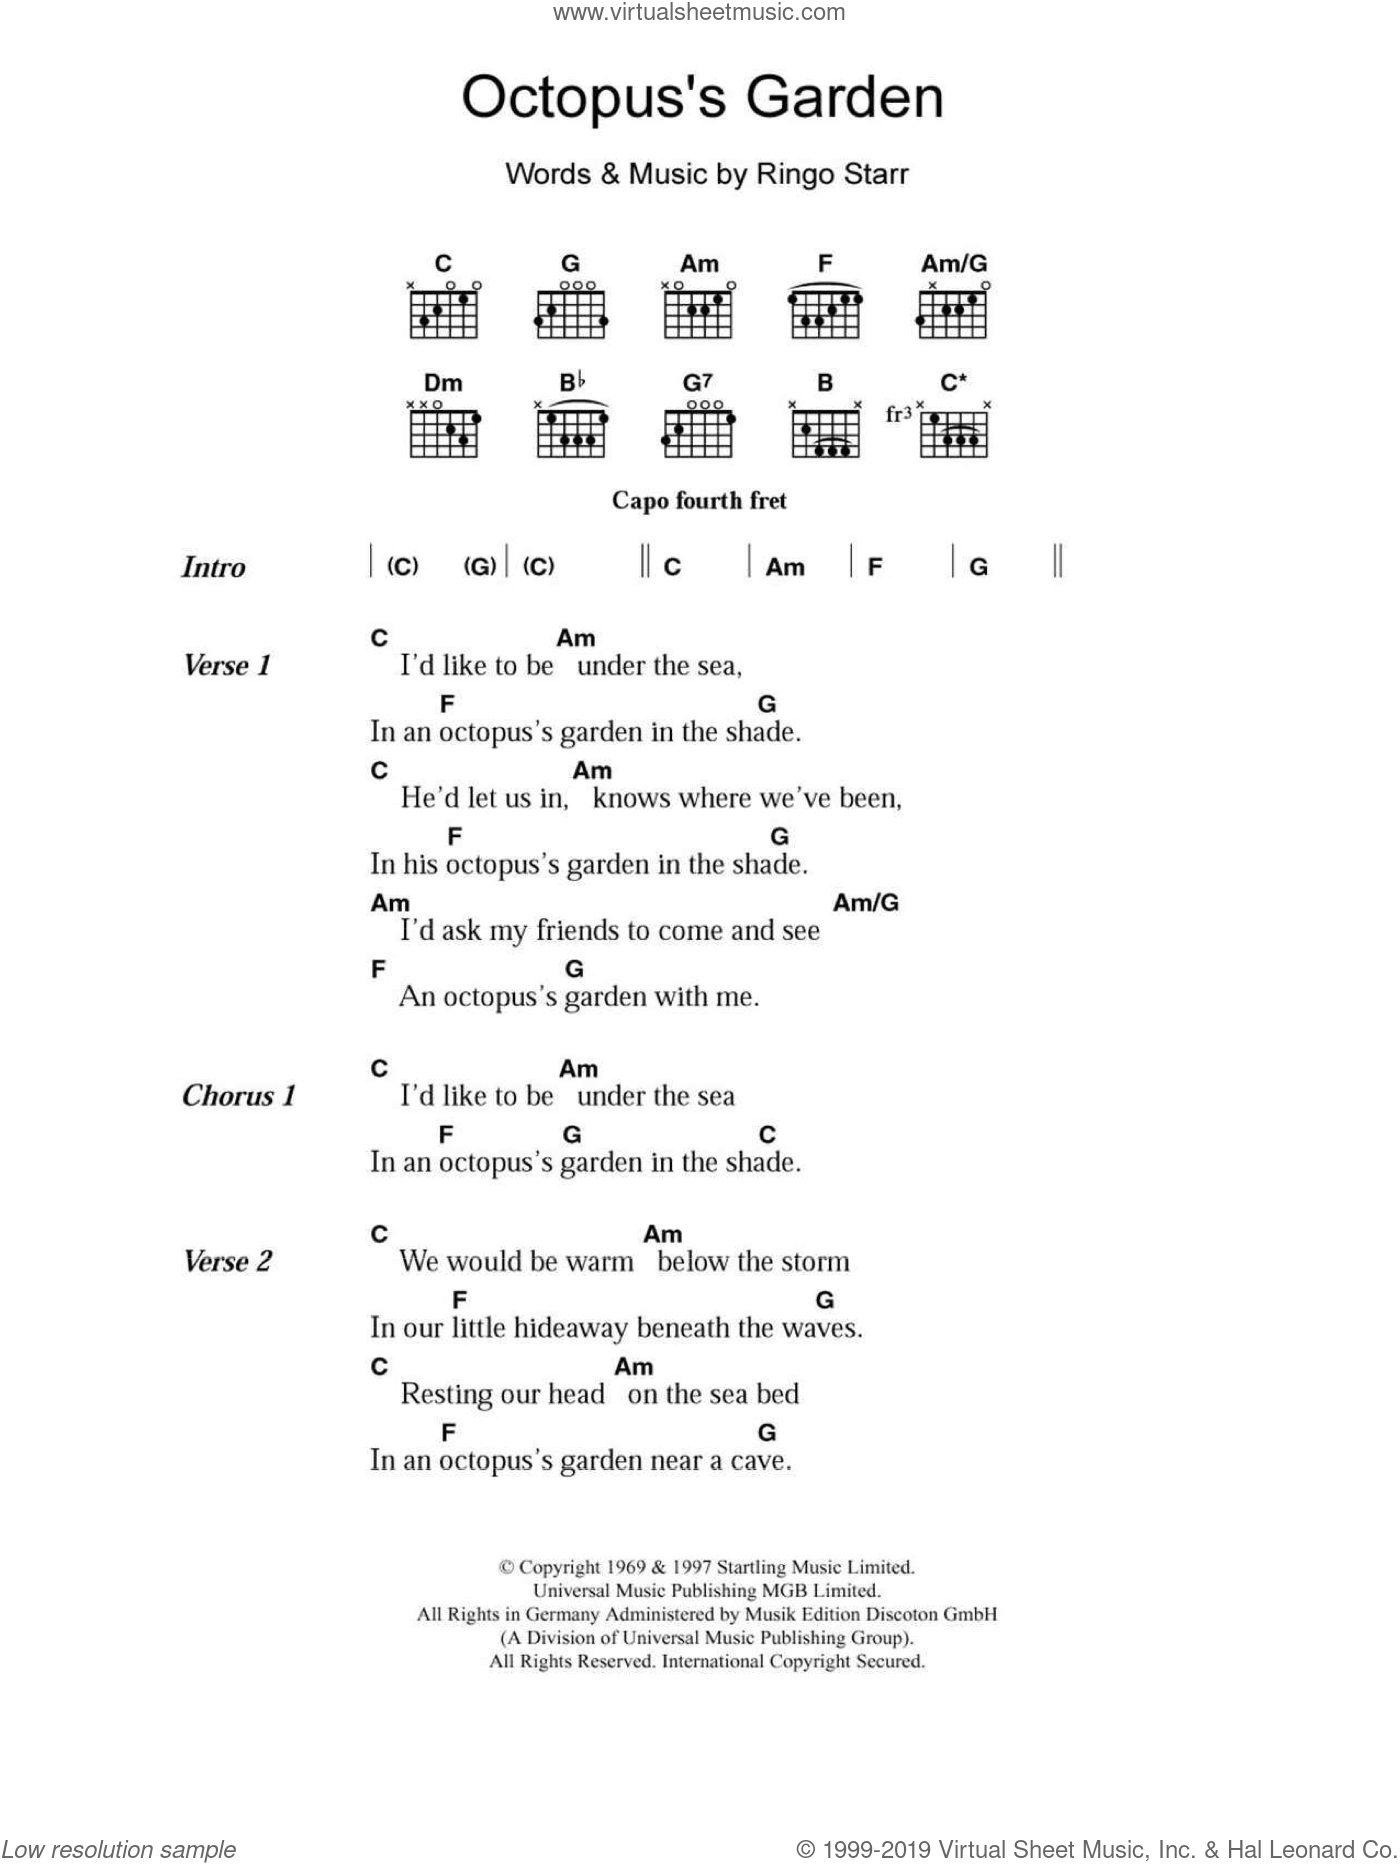 Octopus's Garden sheet music for guitar (chords) by Ringo Starr